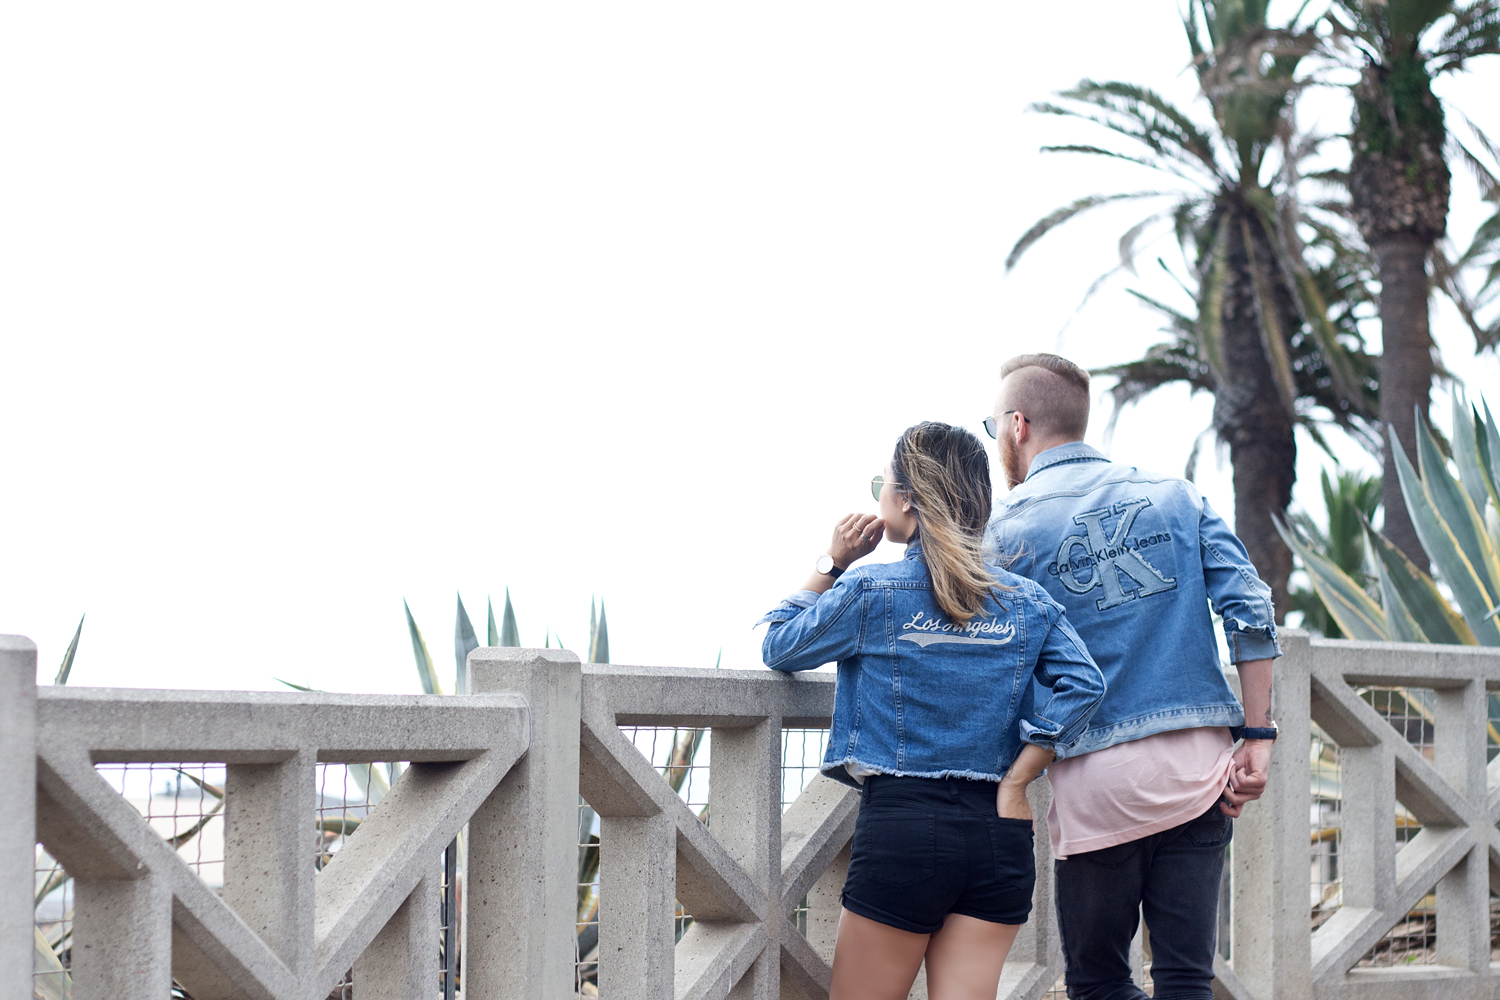 03pacsun-hisandhers-calvinklein-denim-santamonica-la-travel-fashion-style